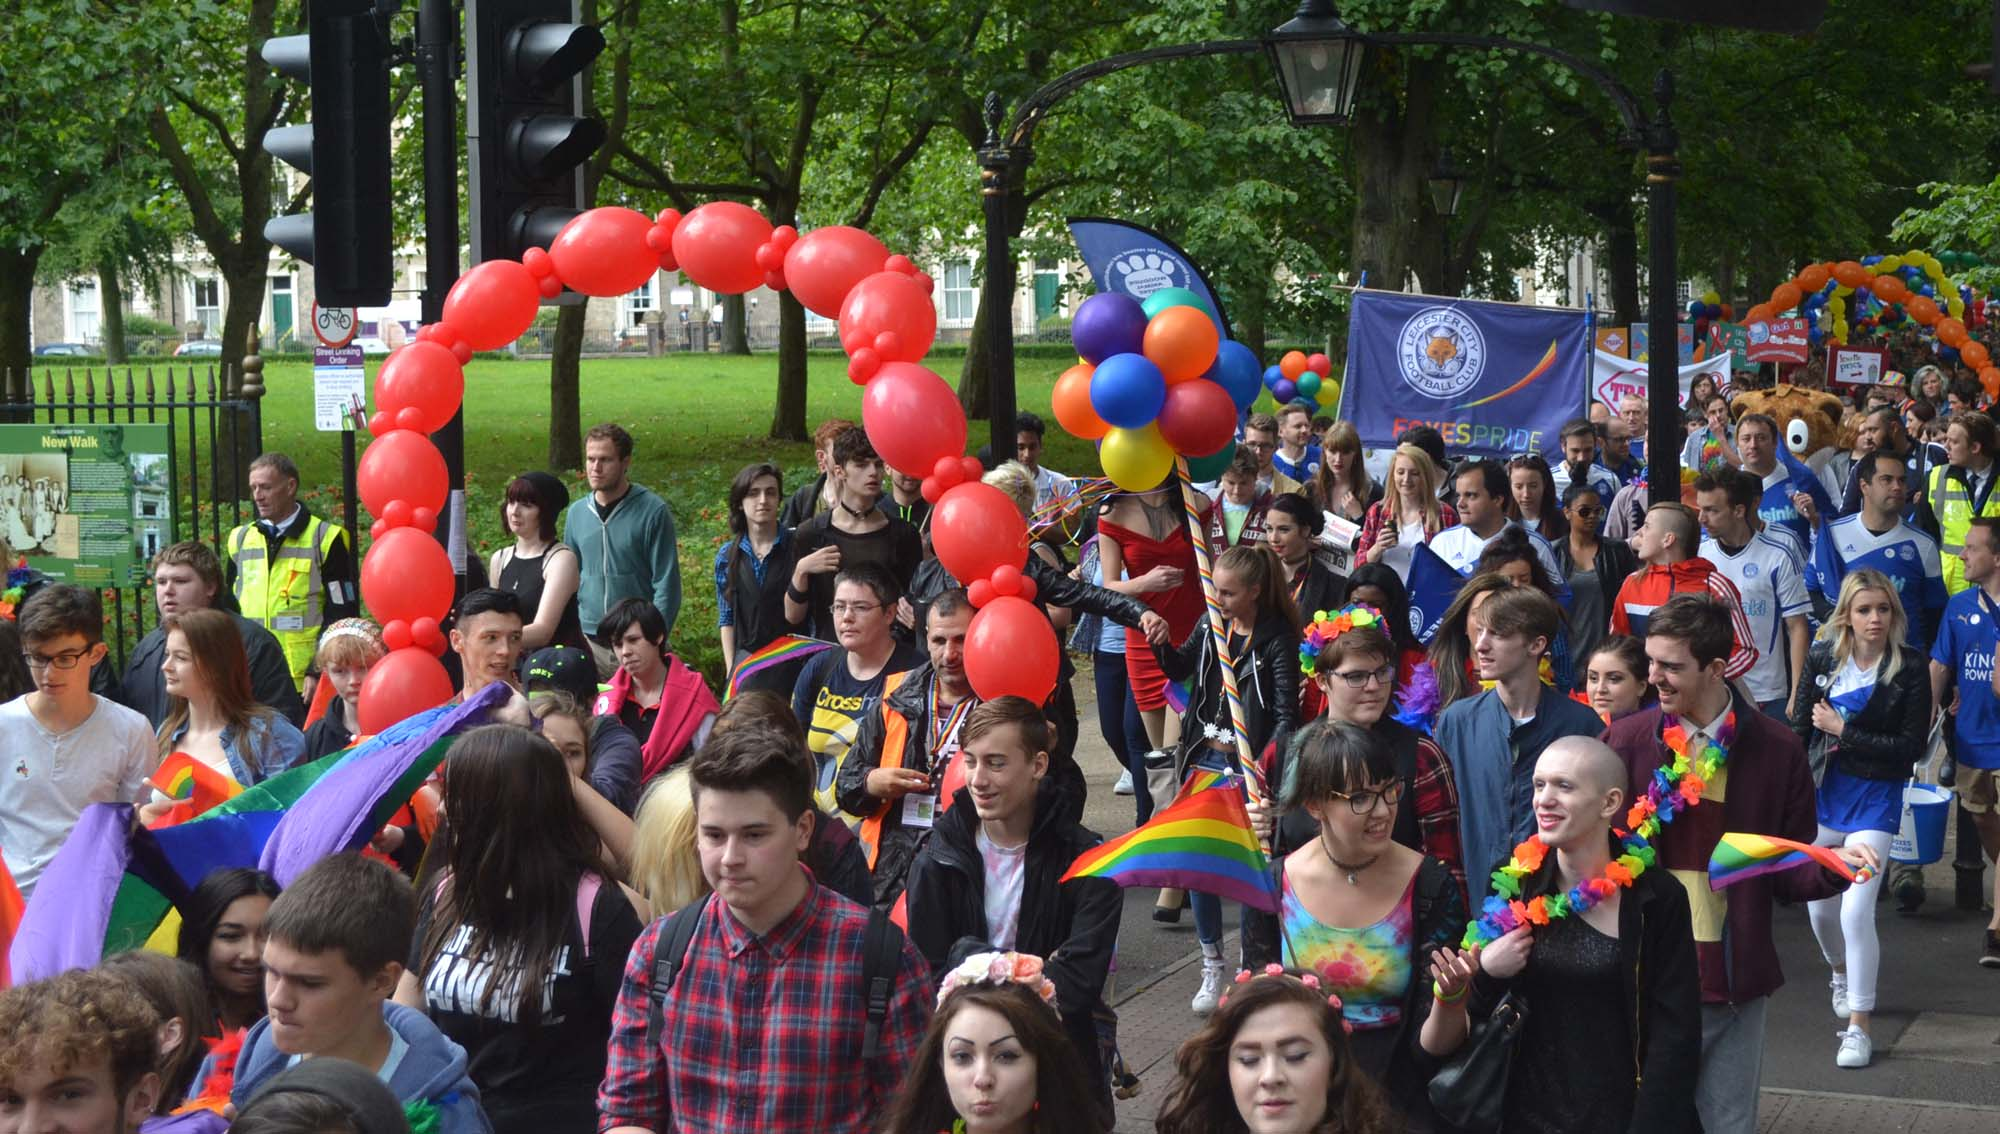 The Leicester Pride Parade making its way along New Walk -